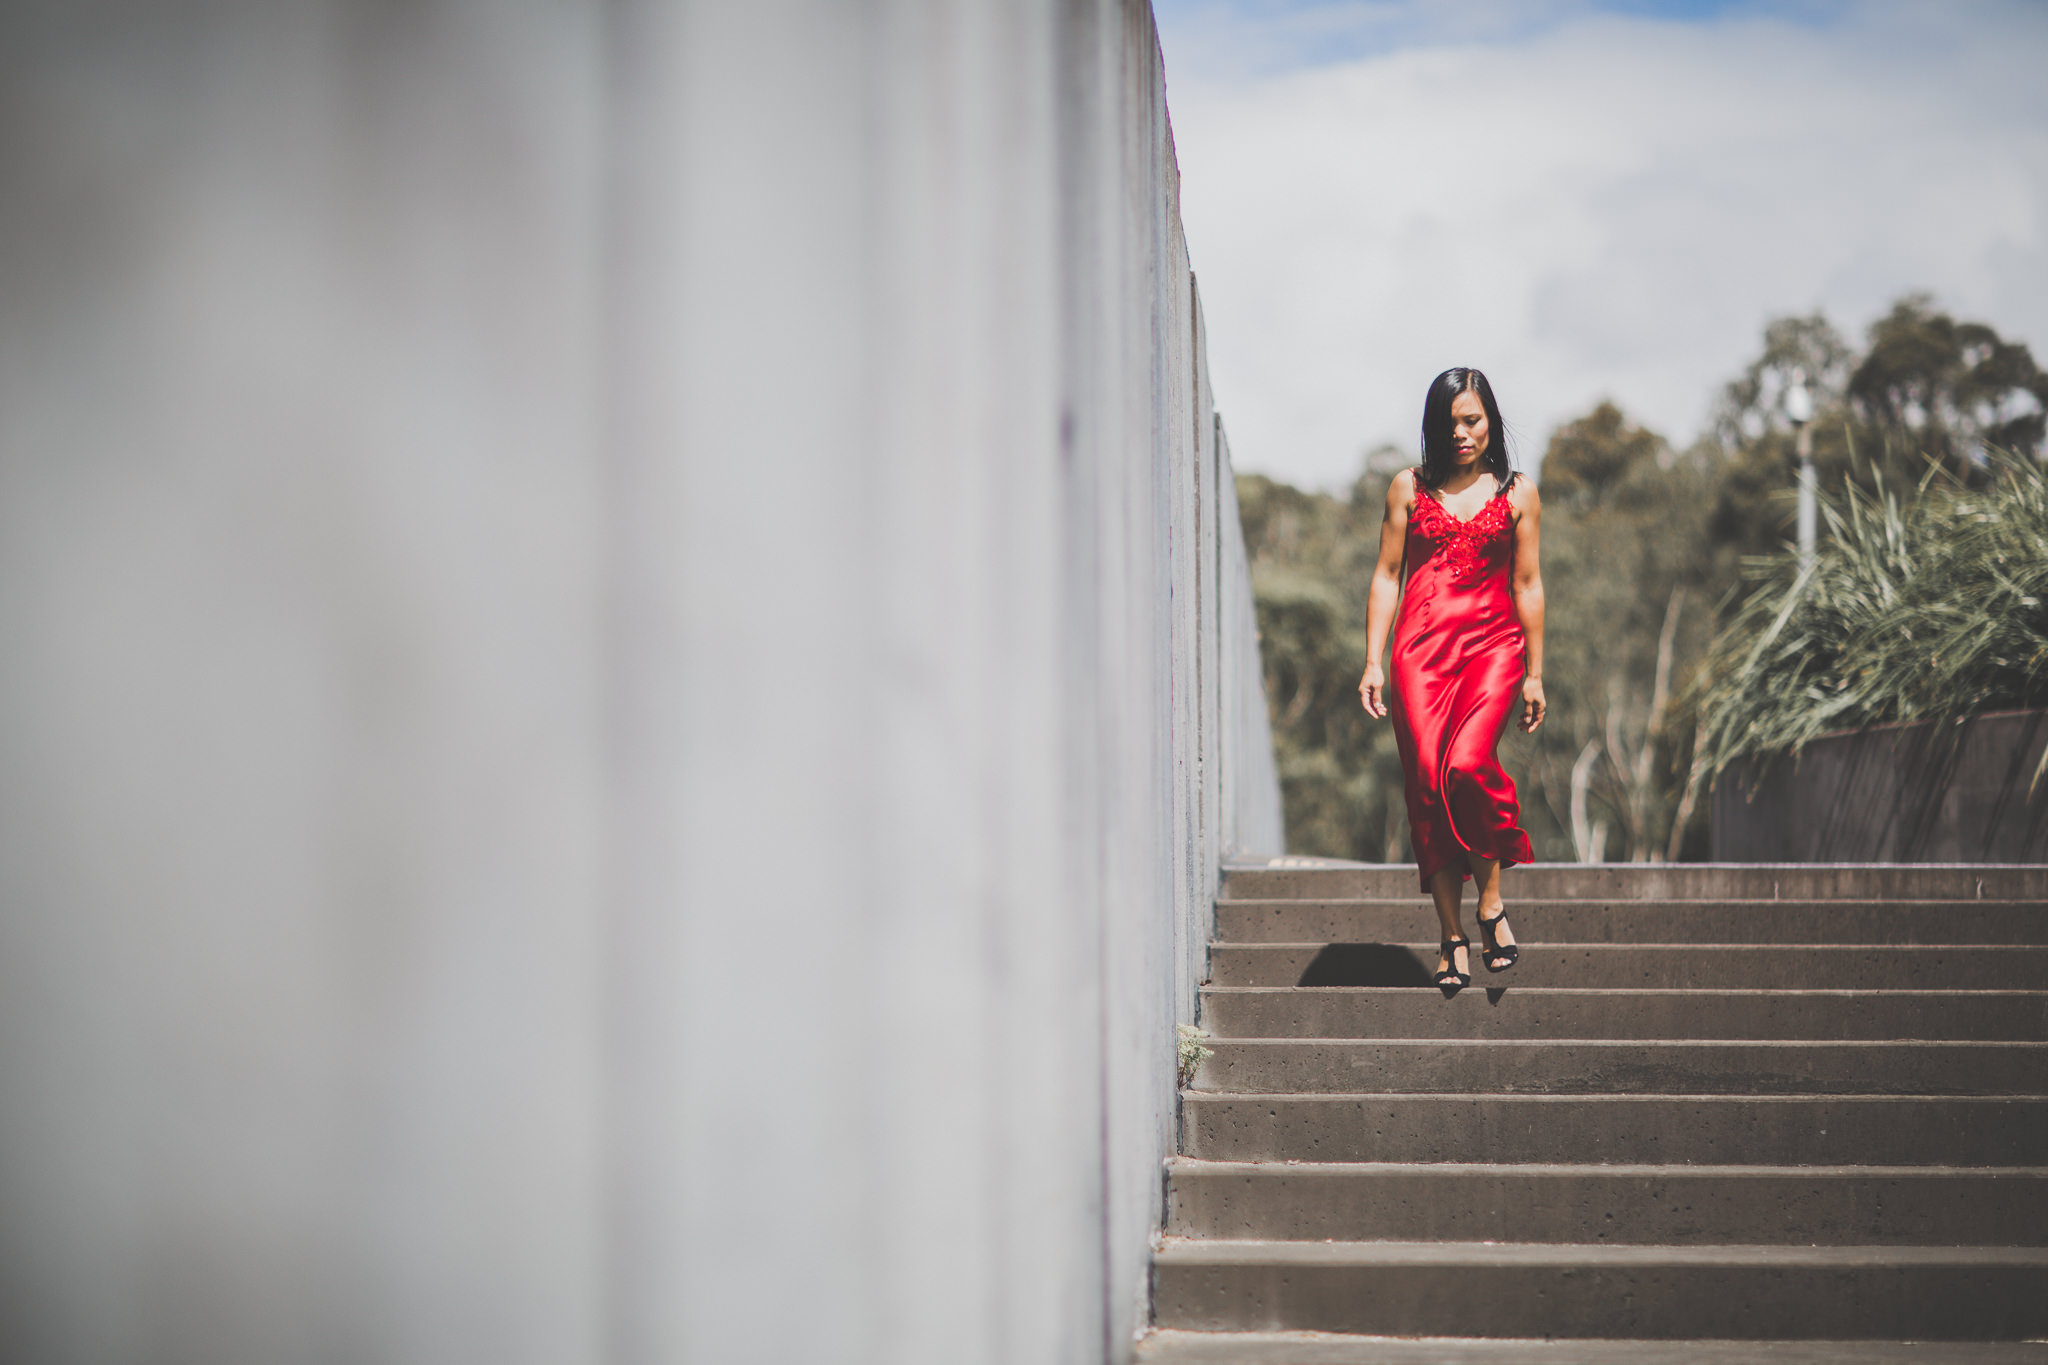 bespoke dress - fashion in melbourne